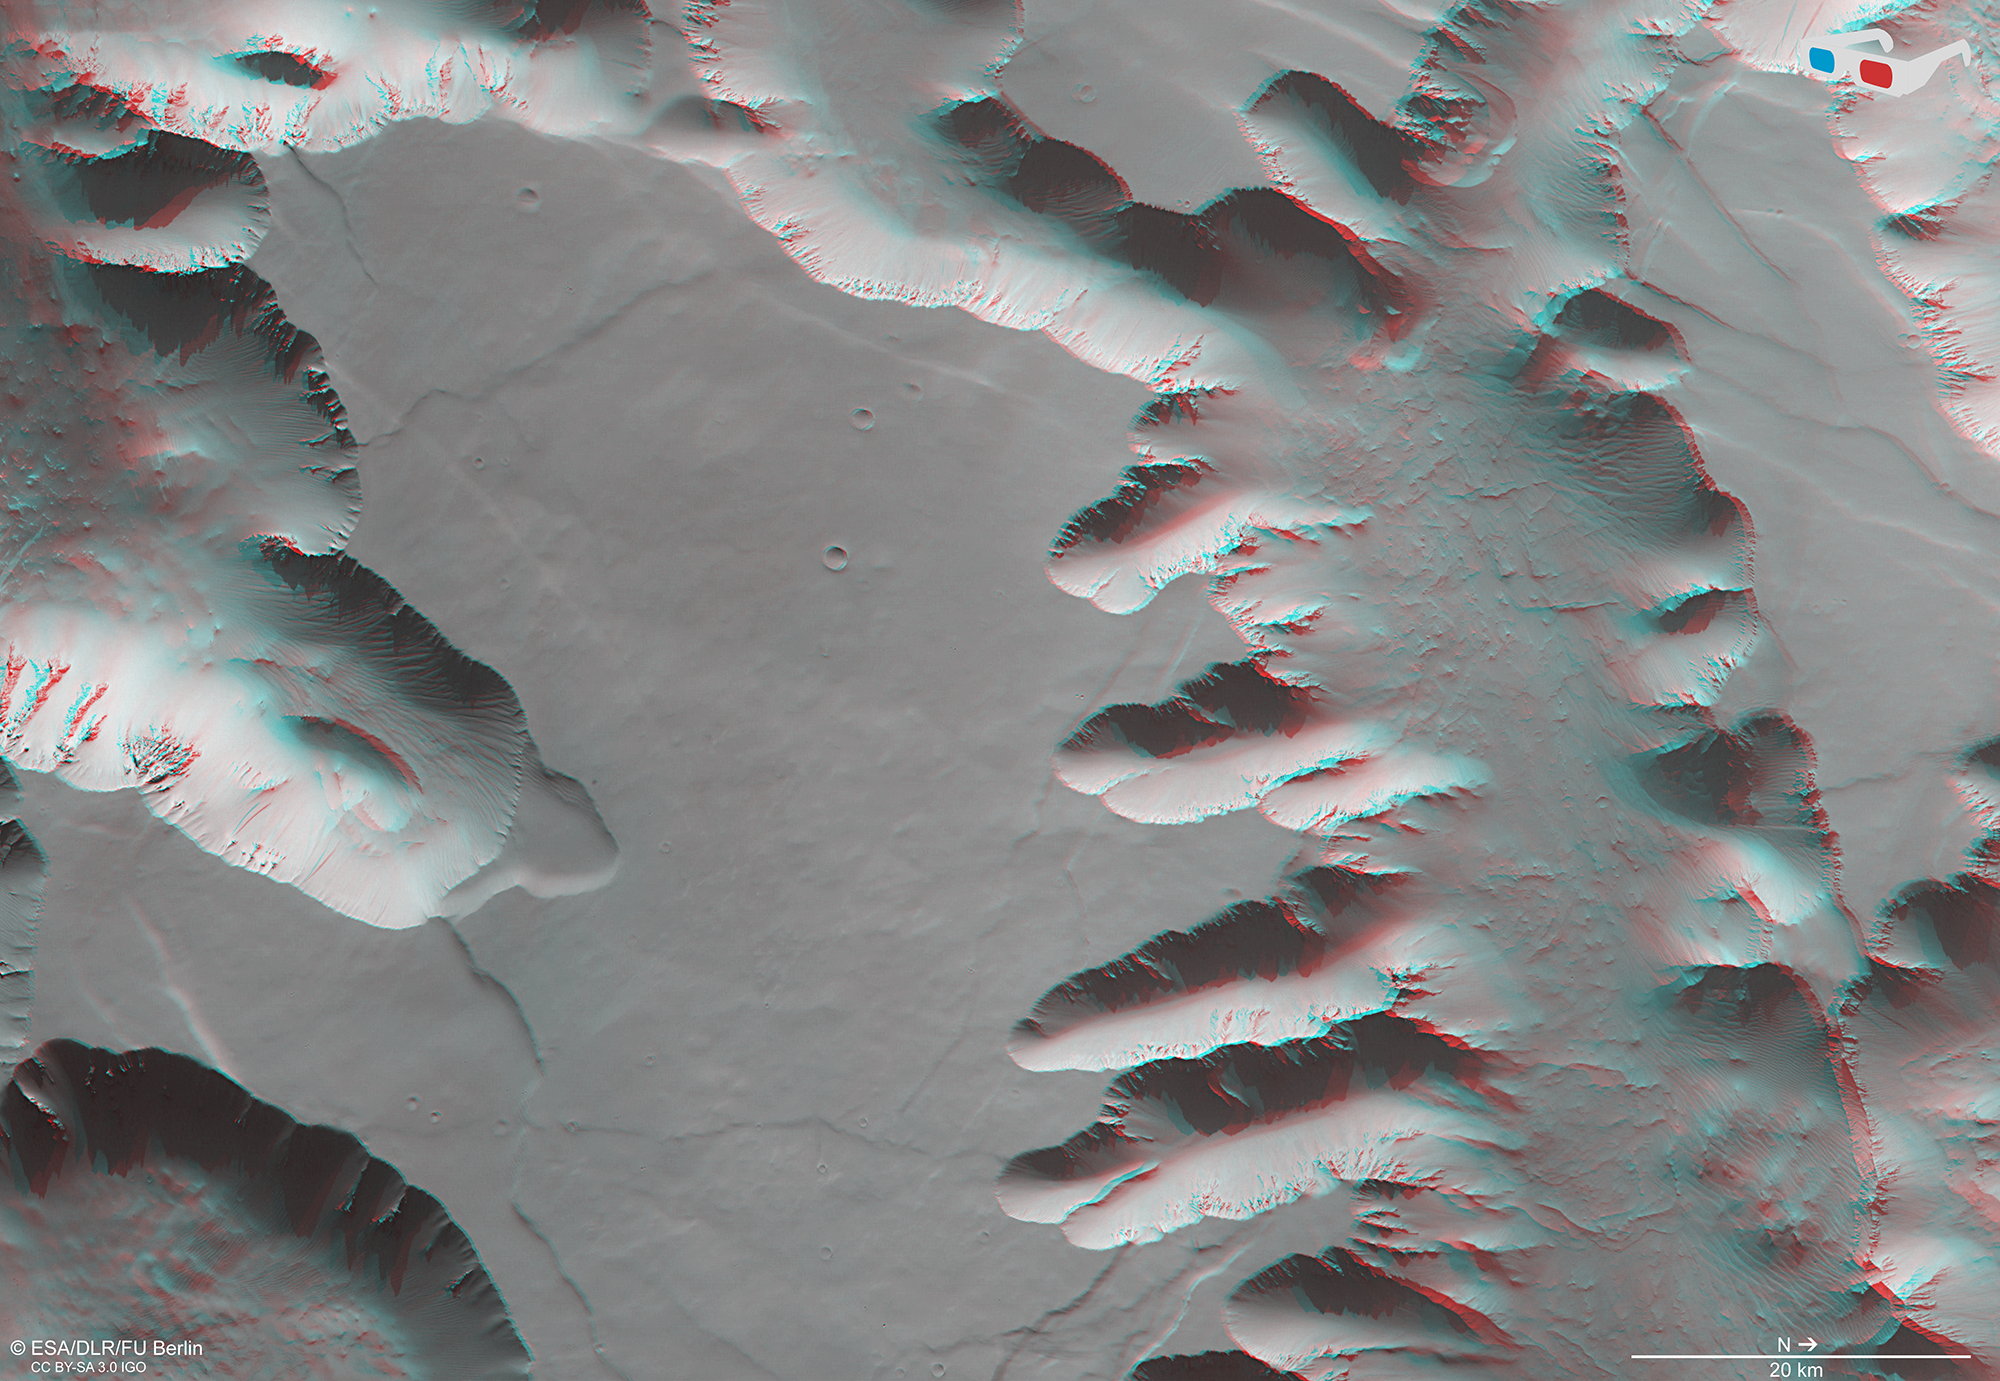 3D_view_in_Noctis_Labyrinthus